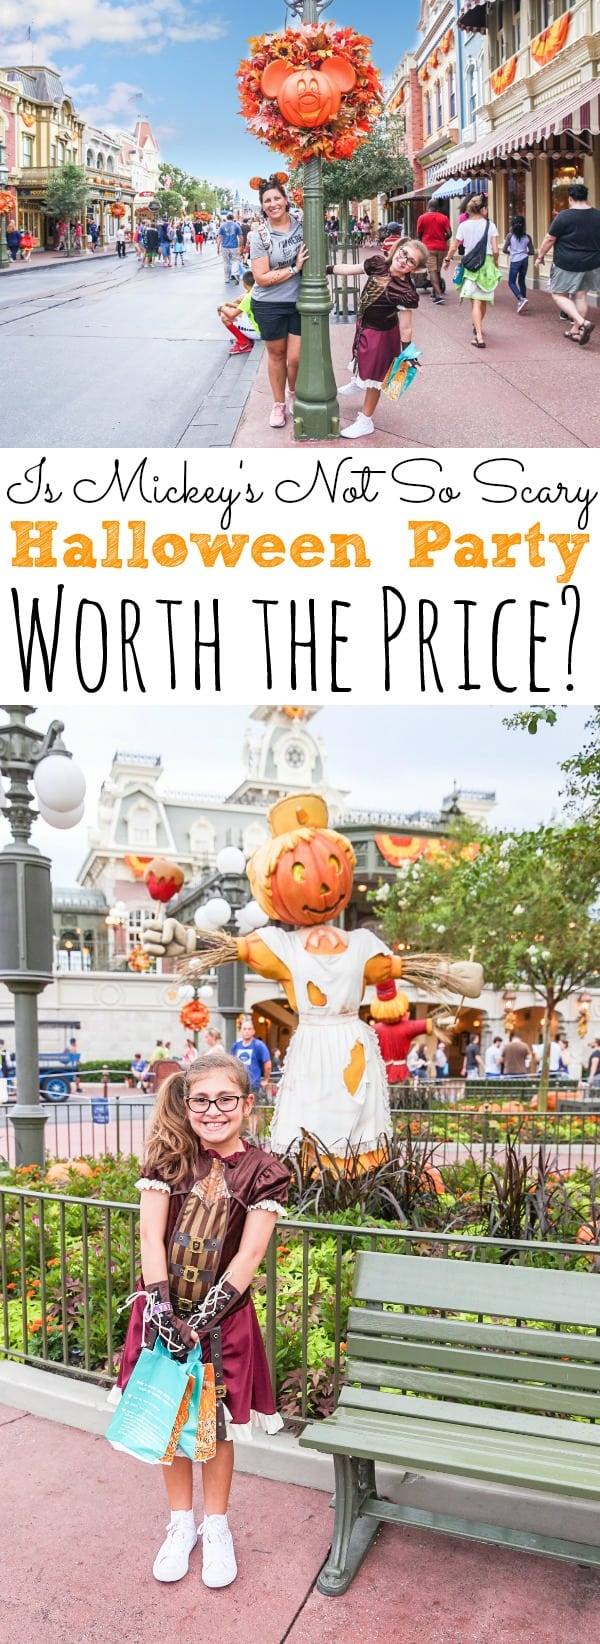 Is Mickey's Not So Scary Halloween Party Worth The Price